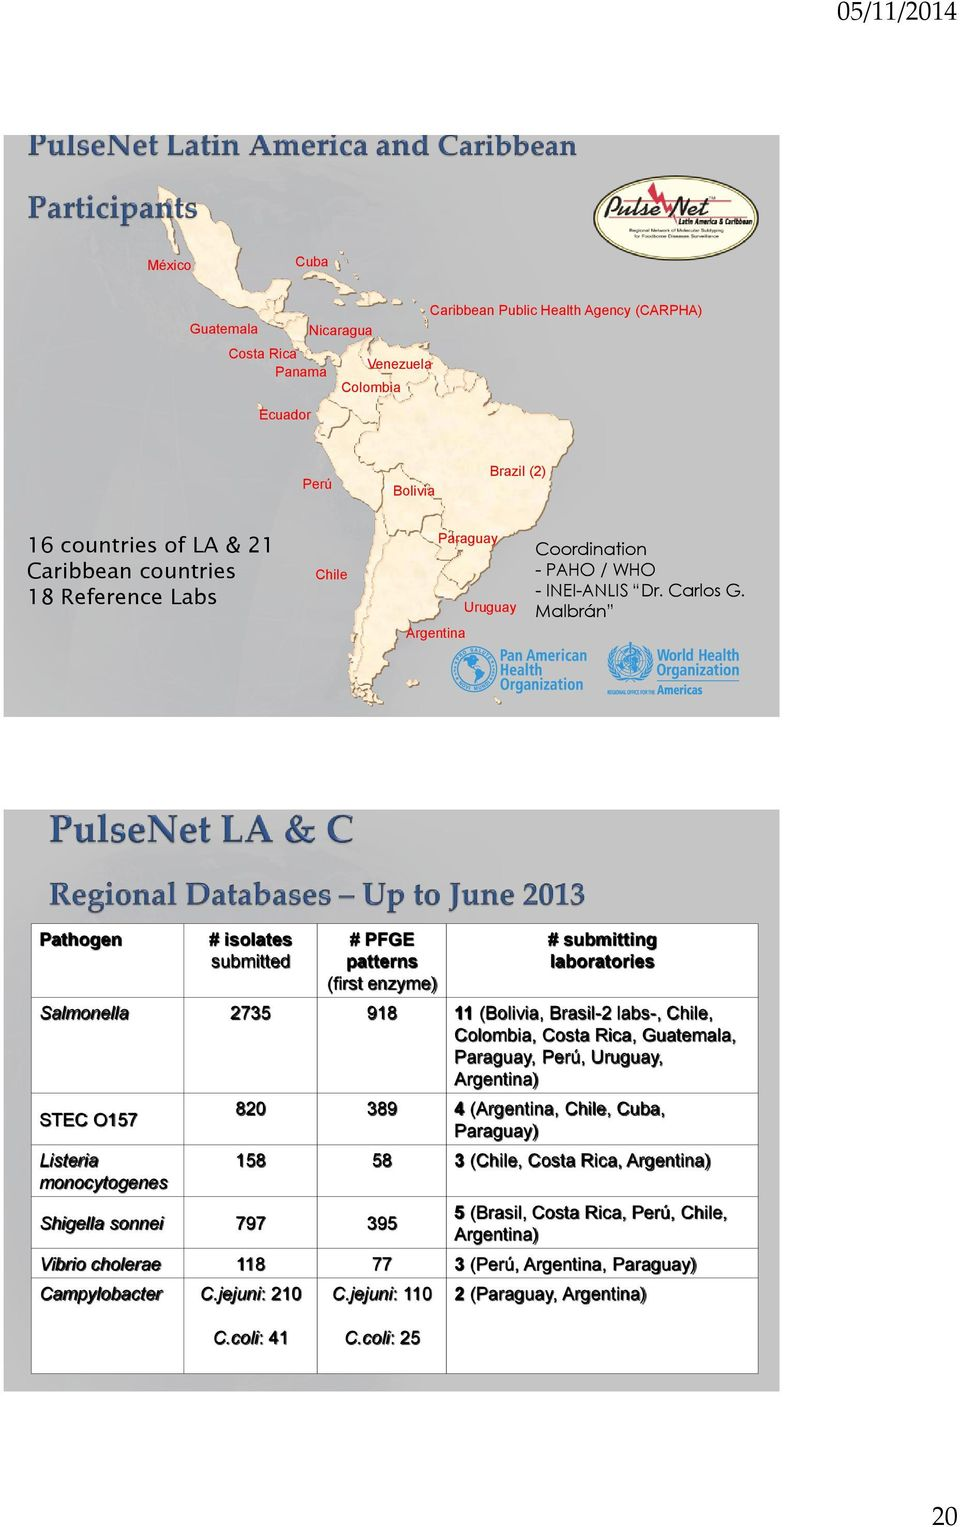 Malbrán Pathogen # isolates submitted # PFGE patterns (first enzyme) # submitting laboratories Salmonella 2735 918 11 (Bolivia, Brasil-2 labs-, Chile, Colombia, Costa Rica, Guatemala, Paraguay, Perú,